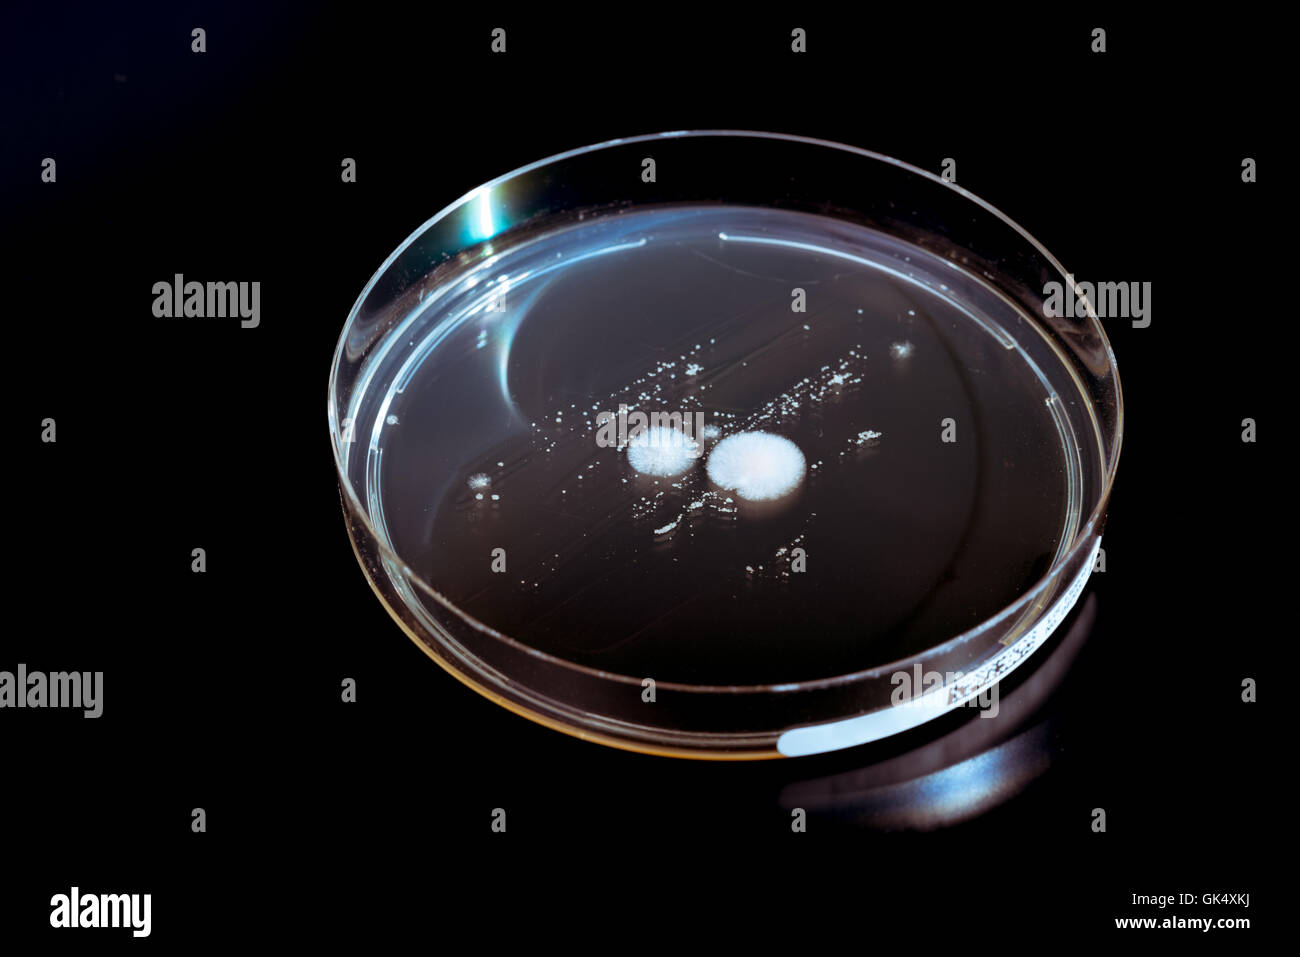 Petri dishes with colonies of microorganisms and fungi - Stock Image